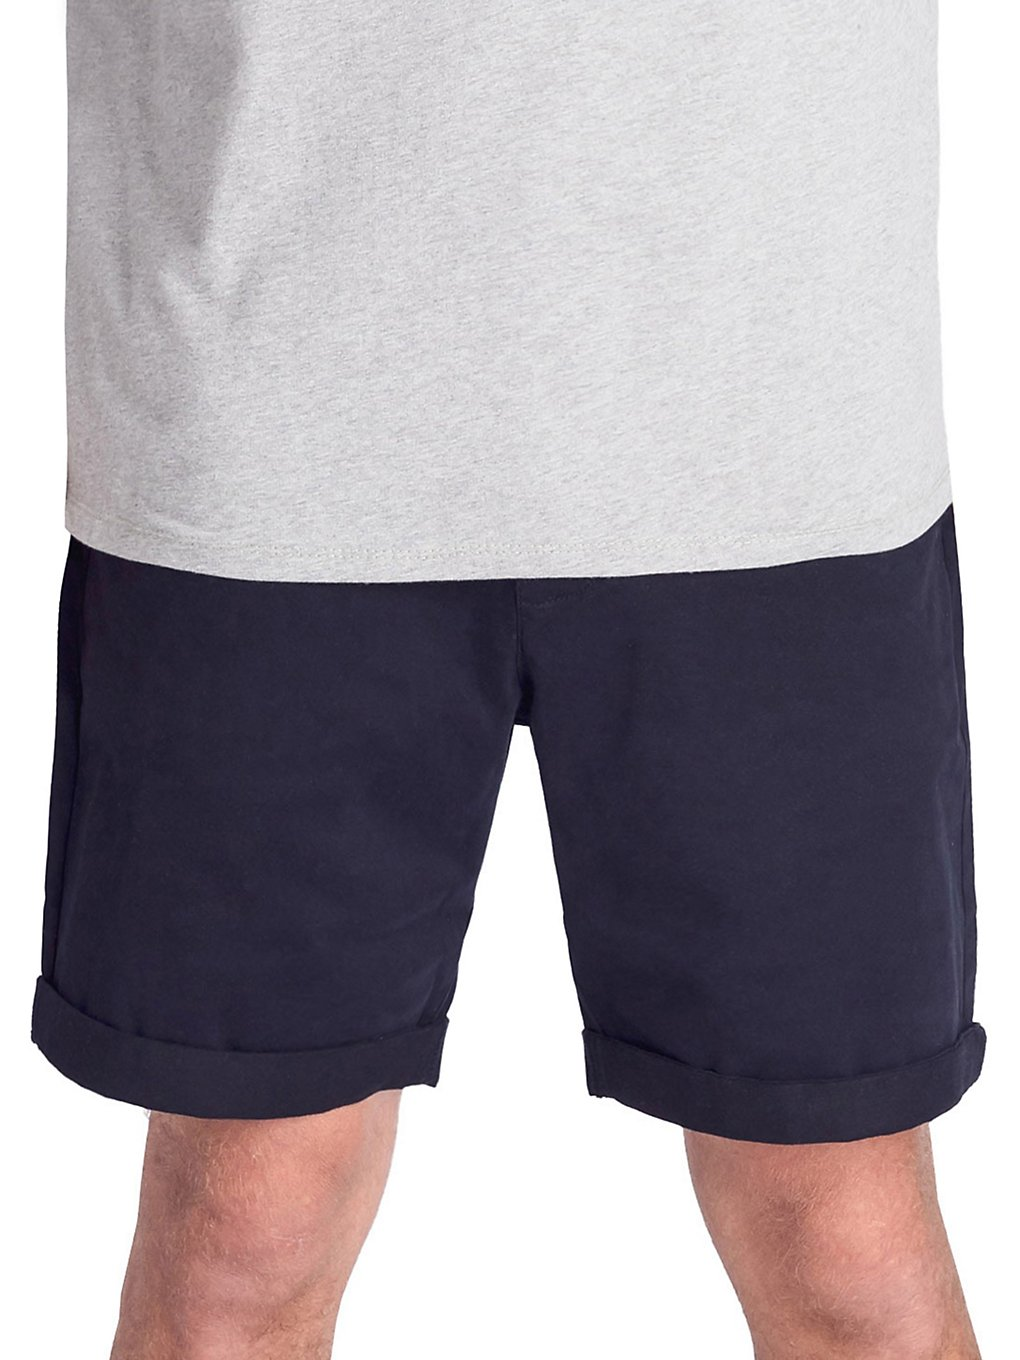 Degree Clothing Wover Shorts dark navy